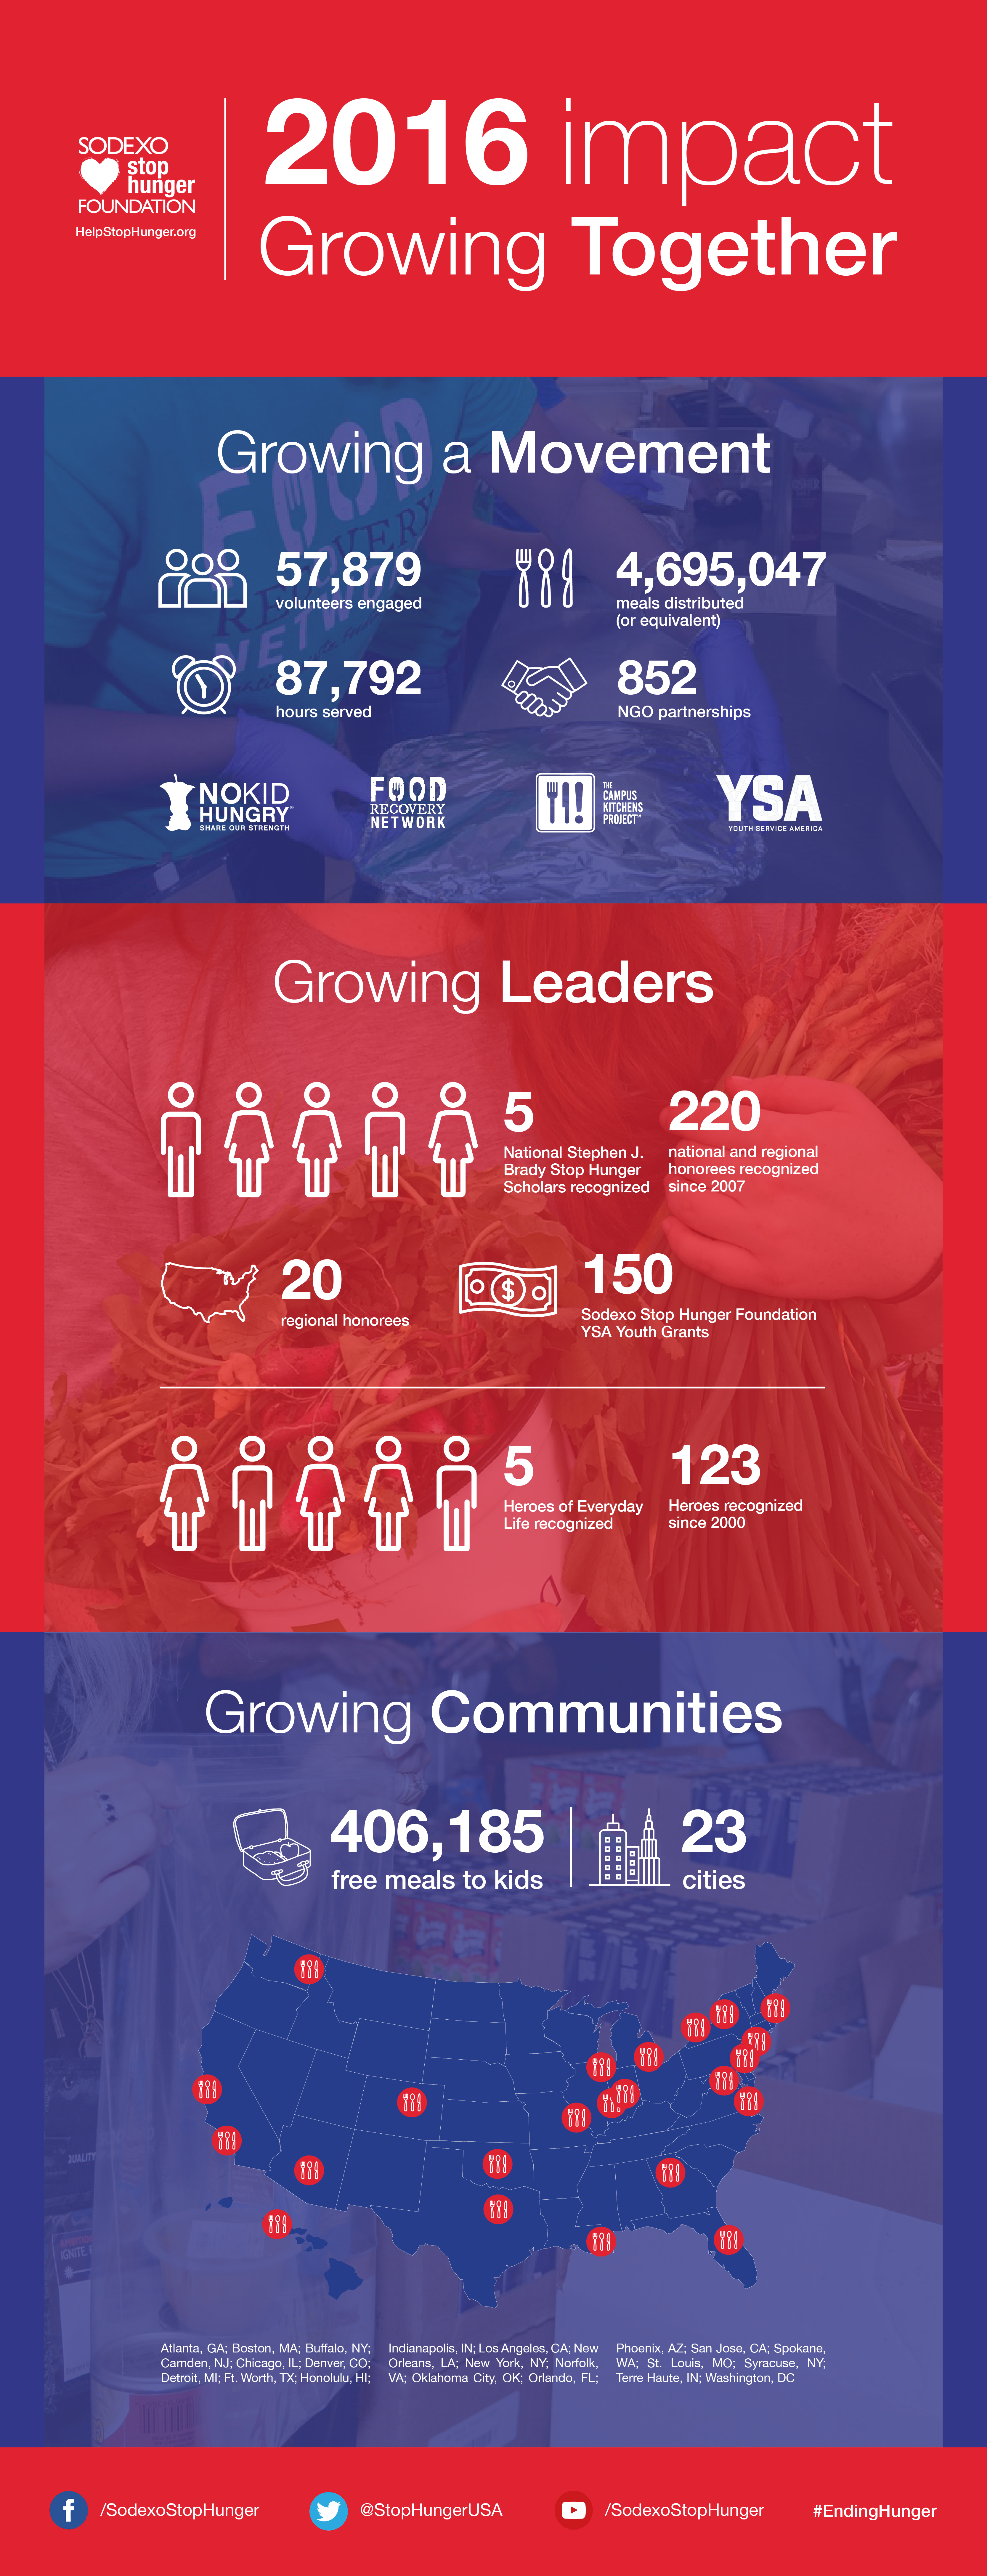 Sodexo Stop Hunger Foundation 2016 Impact Report Infographic.png